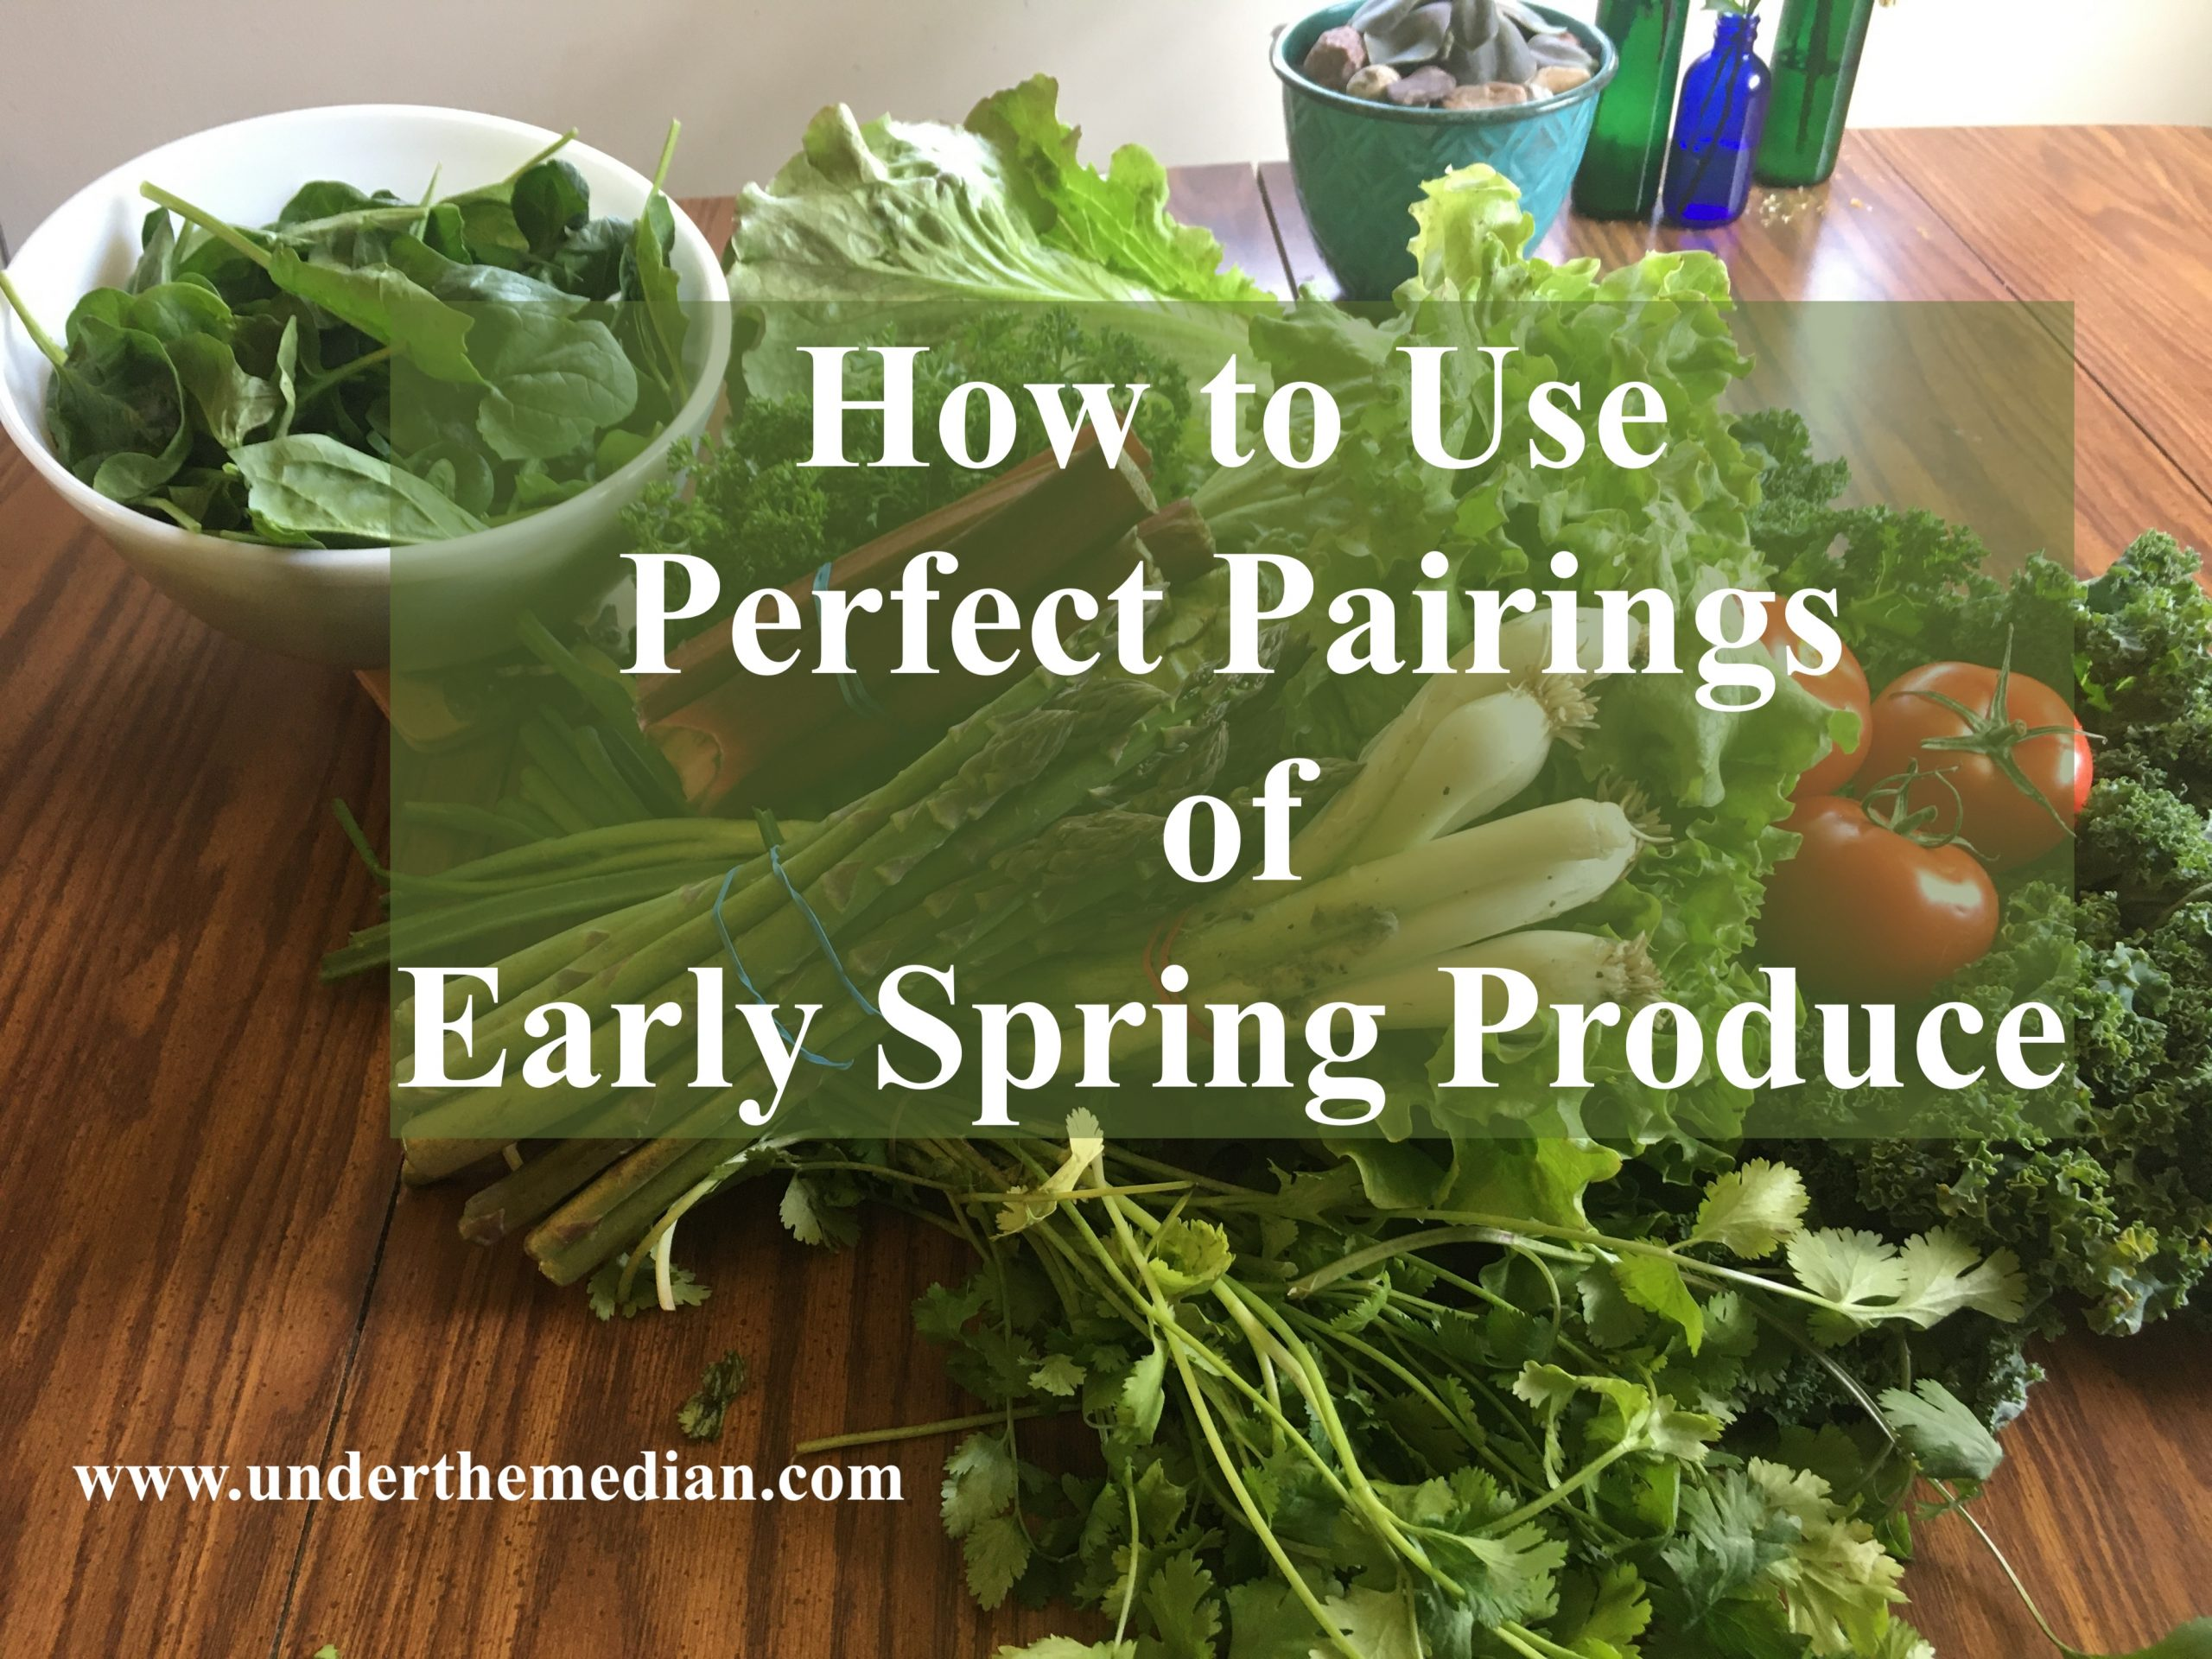 How to Use Perfect Pairings of Early Spring Produce